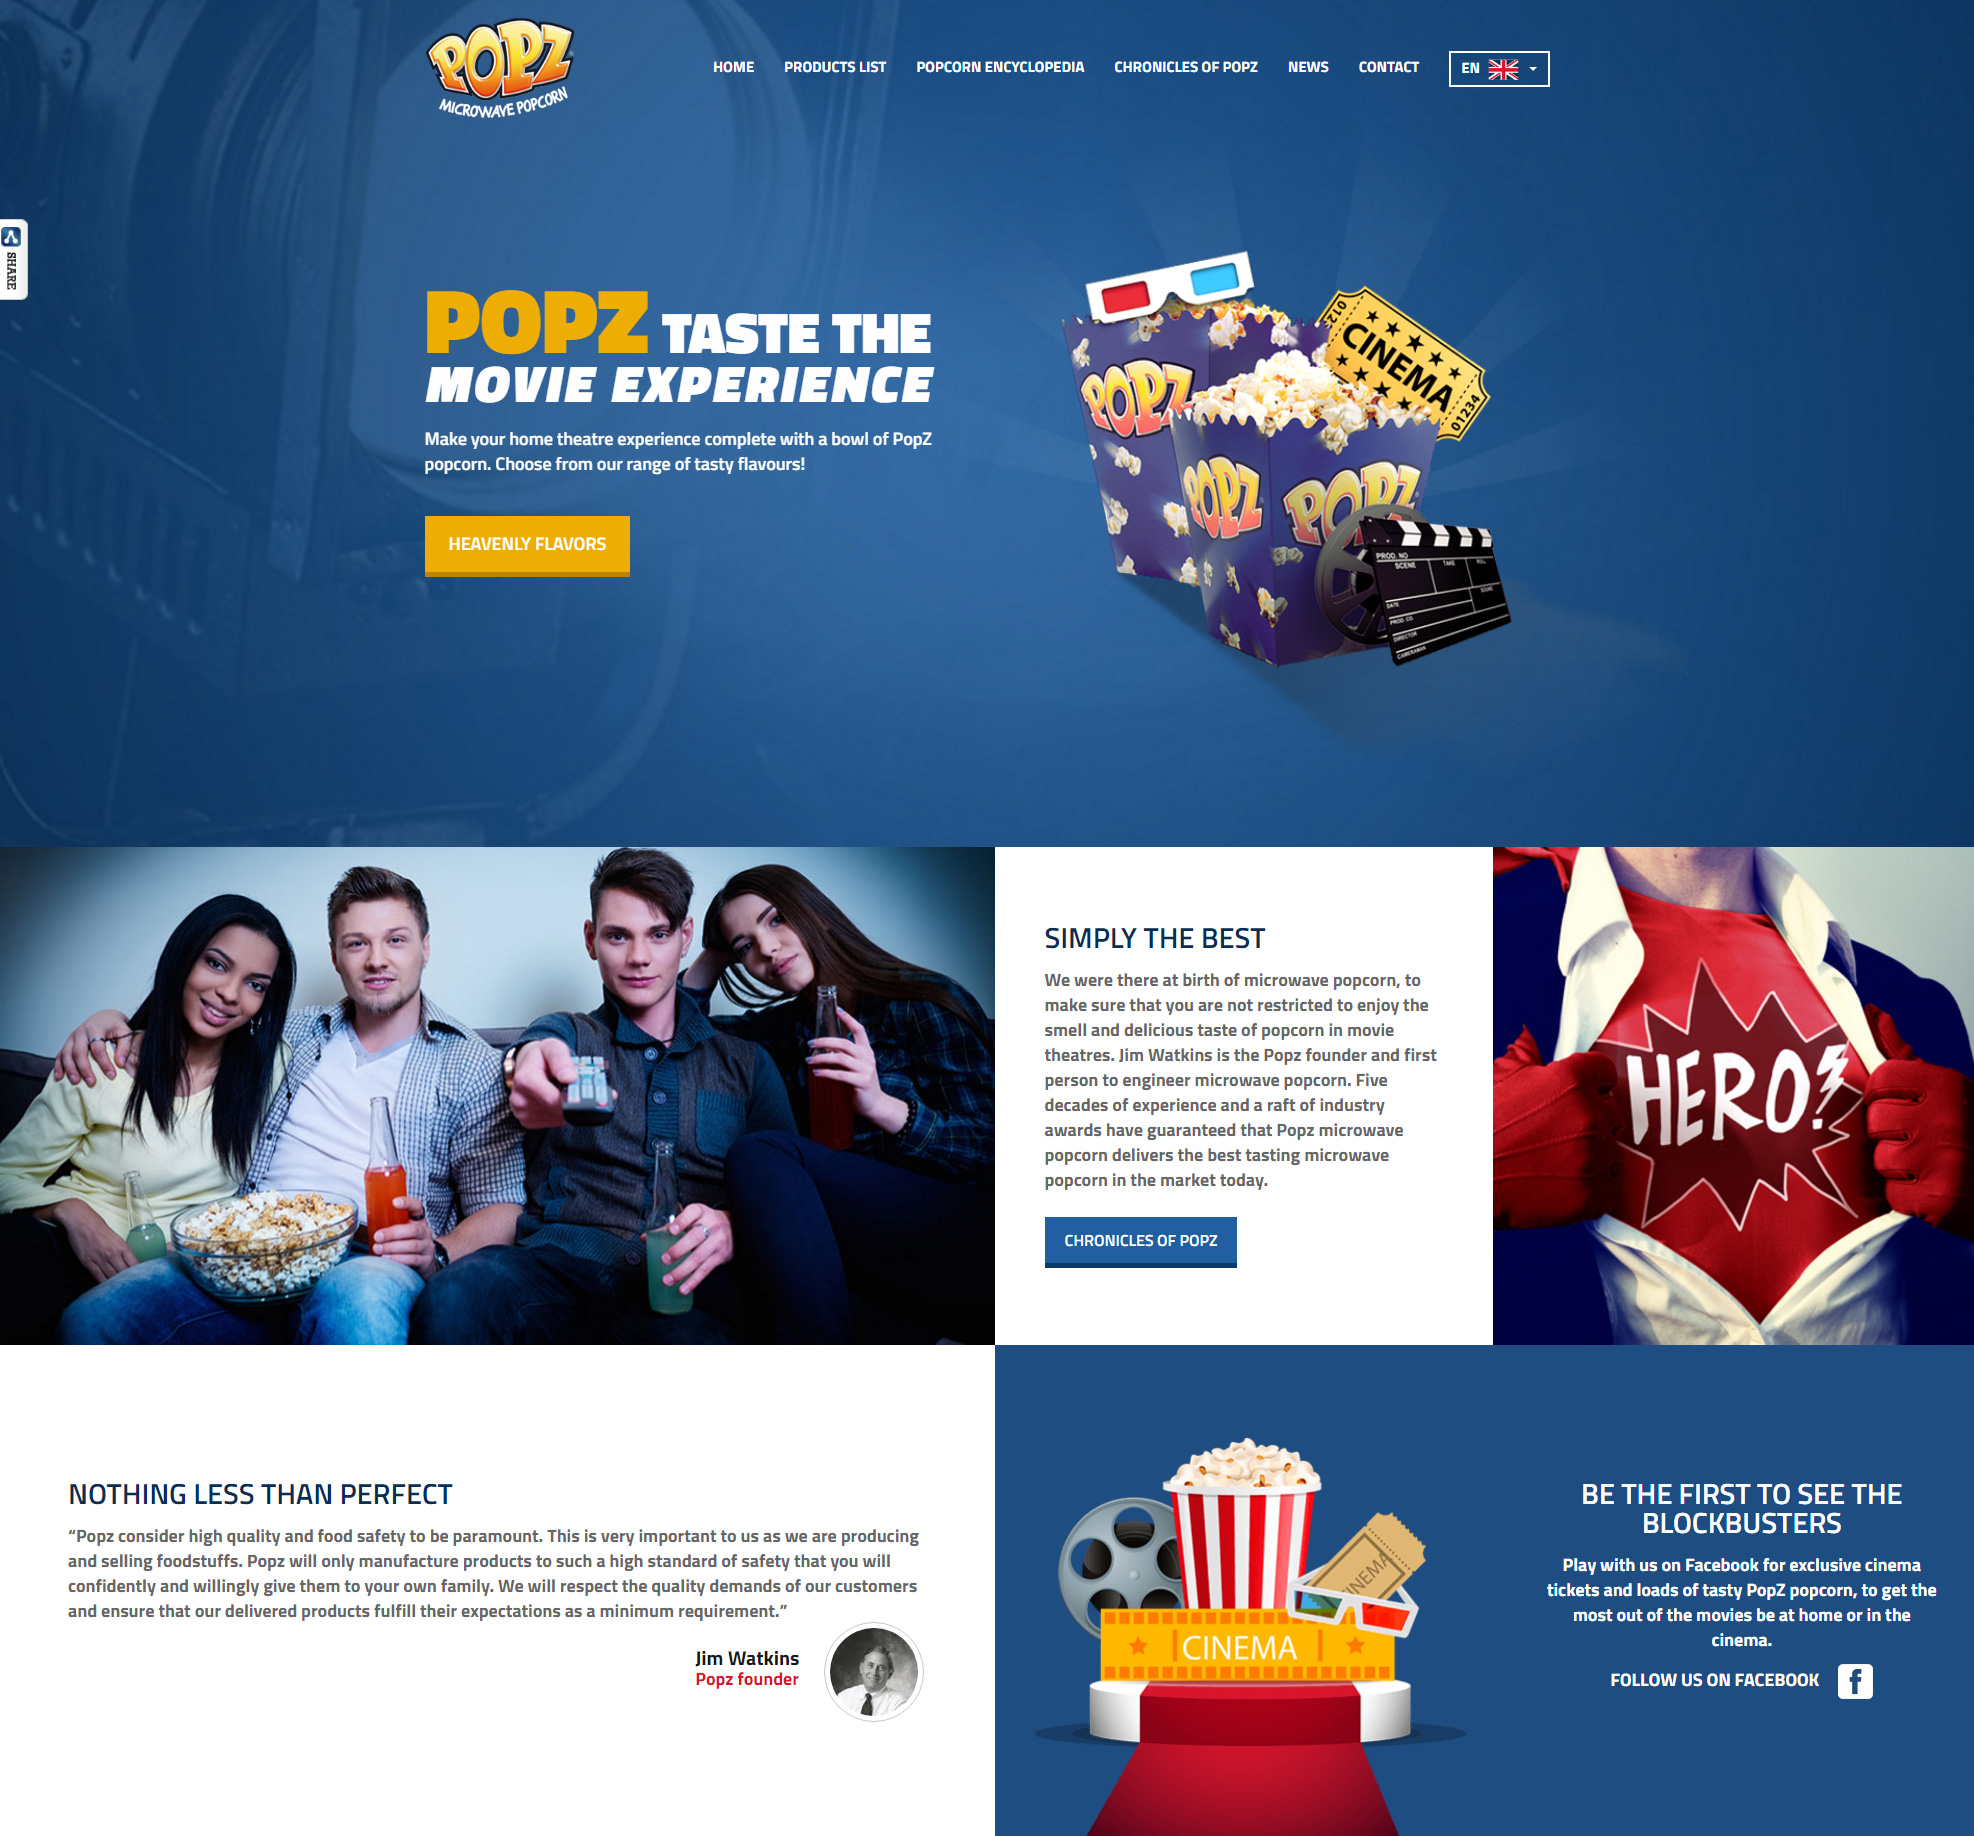 Popz launches new website